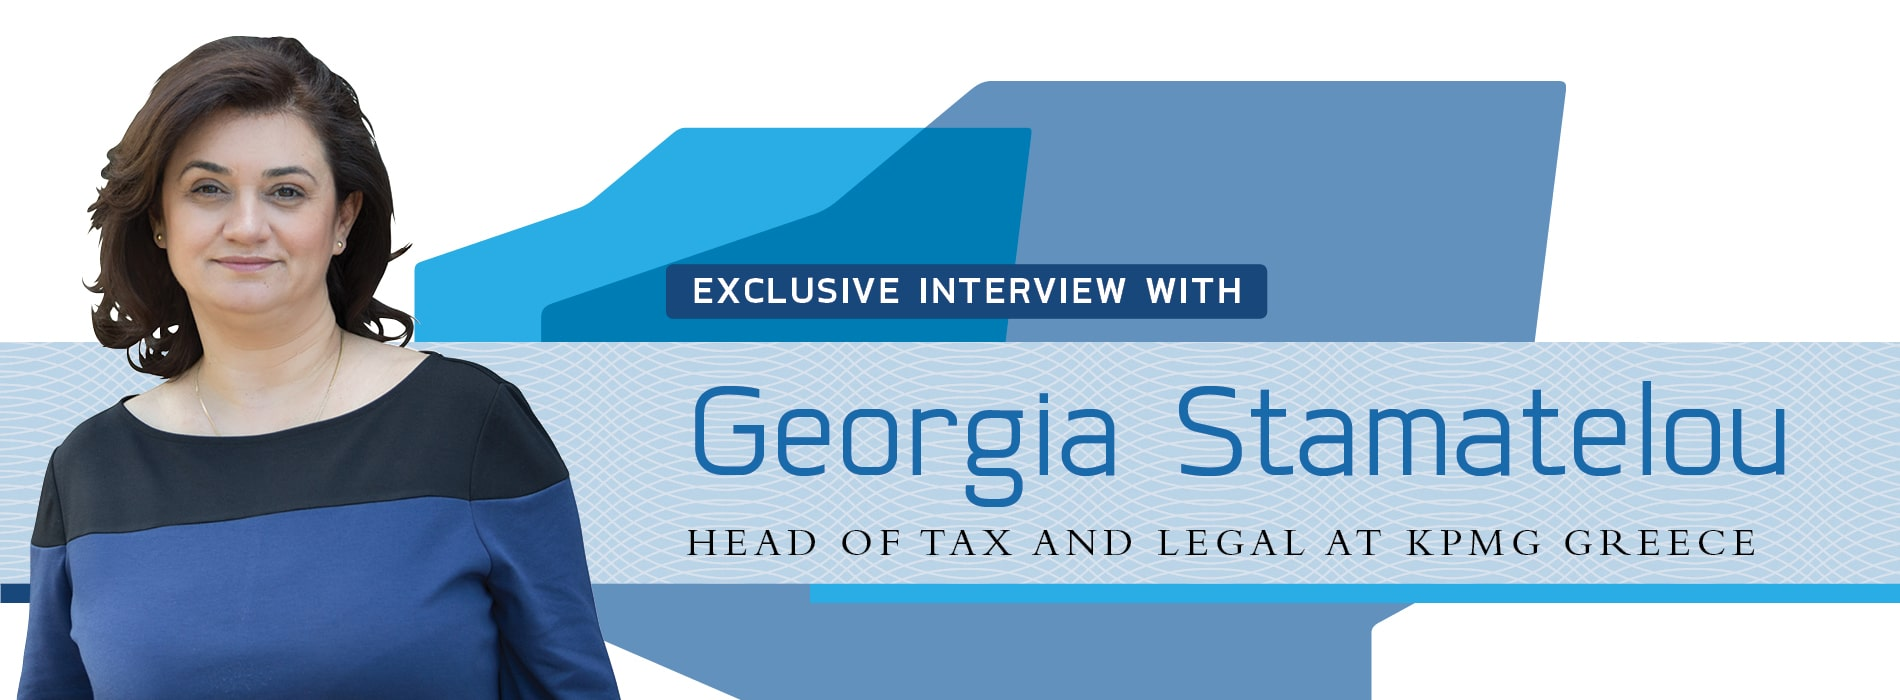 Interview with Georgia Stamatelou,Head of Tax and Legal at KPMG Greece